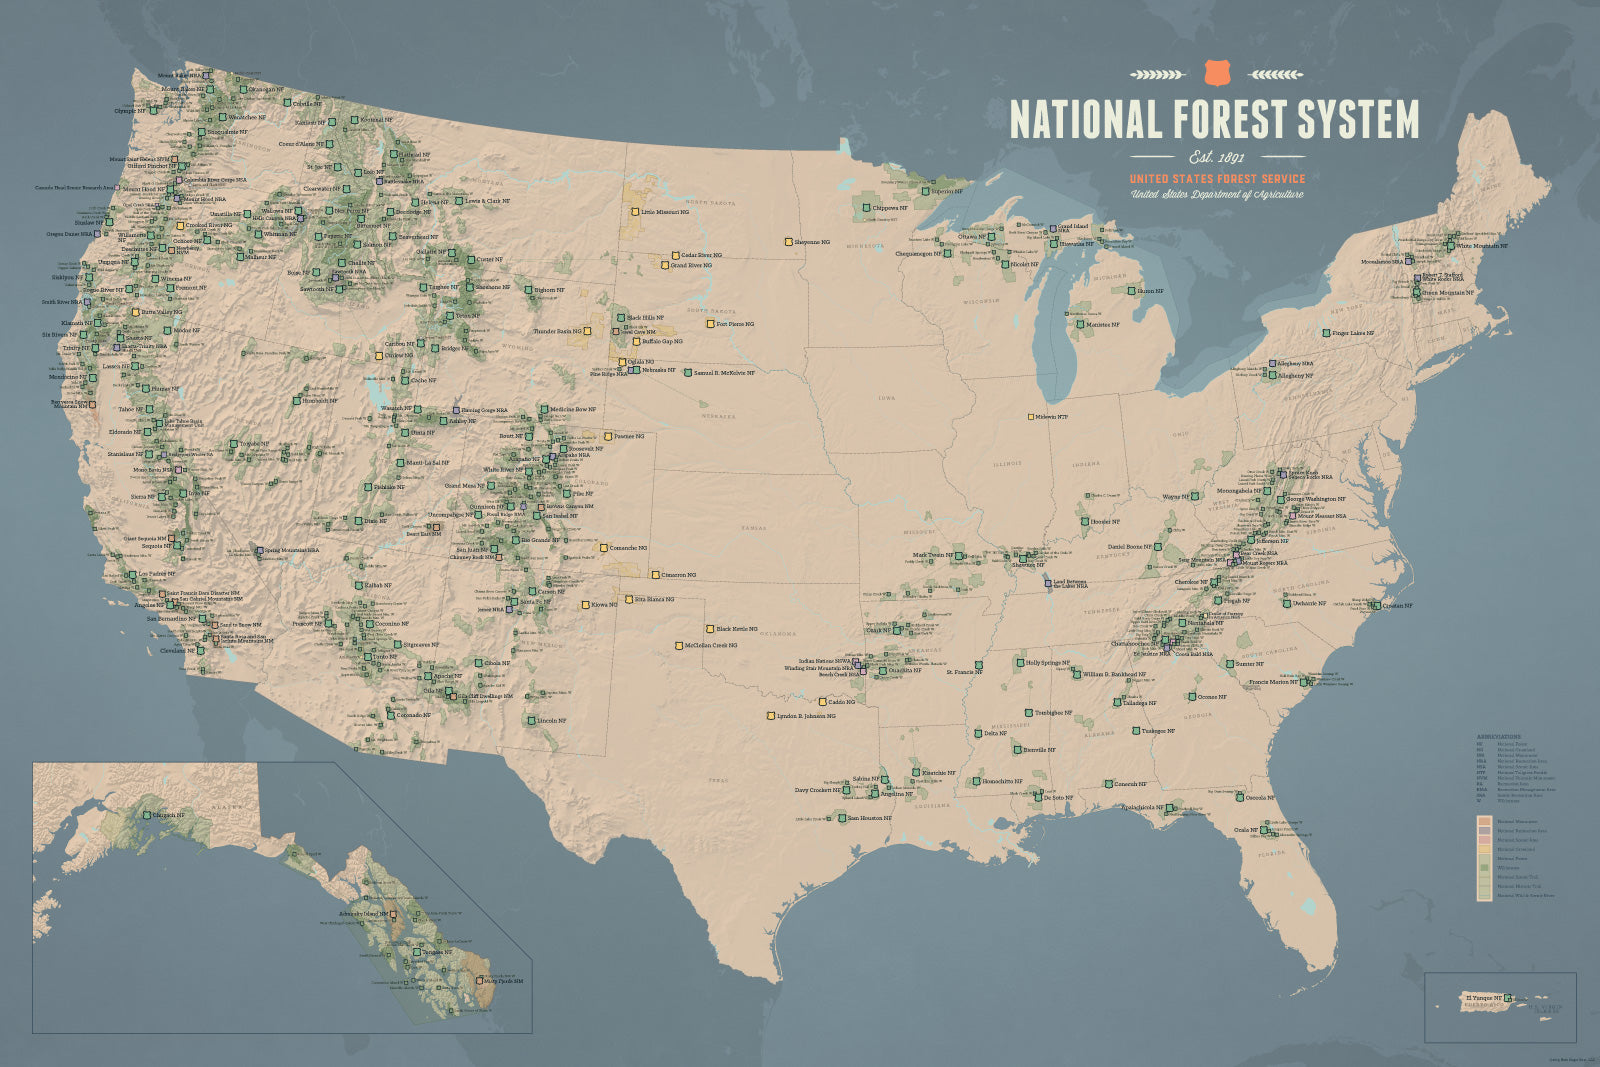 US National Forest System Map 24x36 Poster - Best Maps Ever